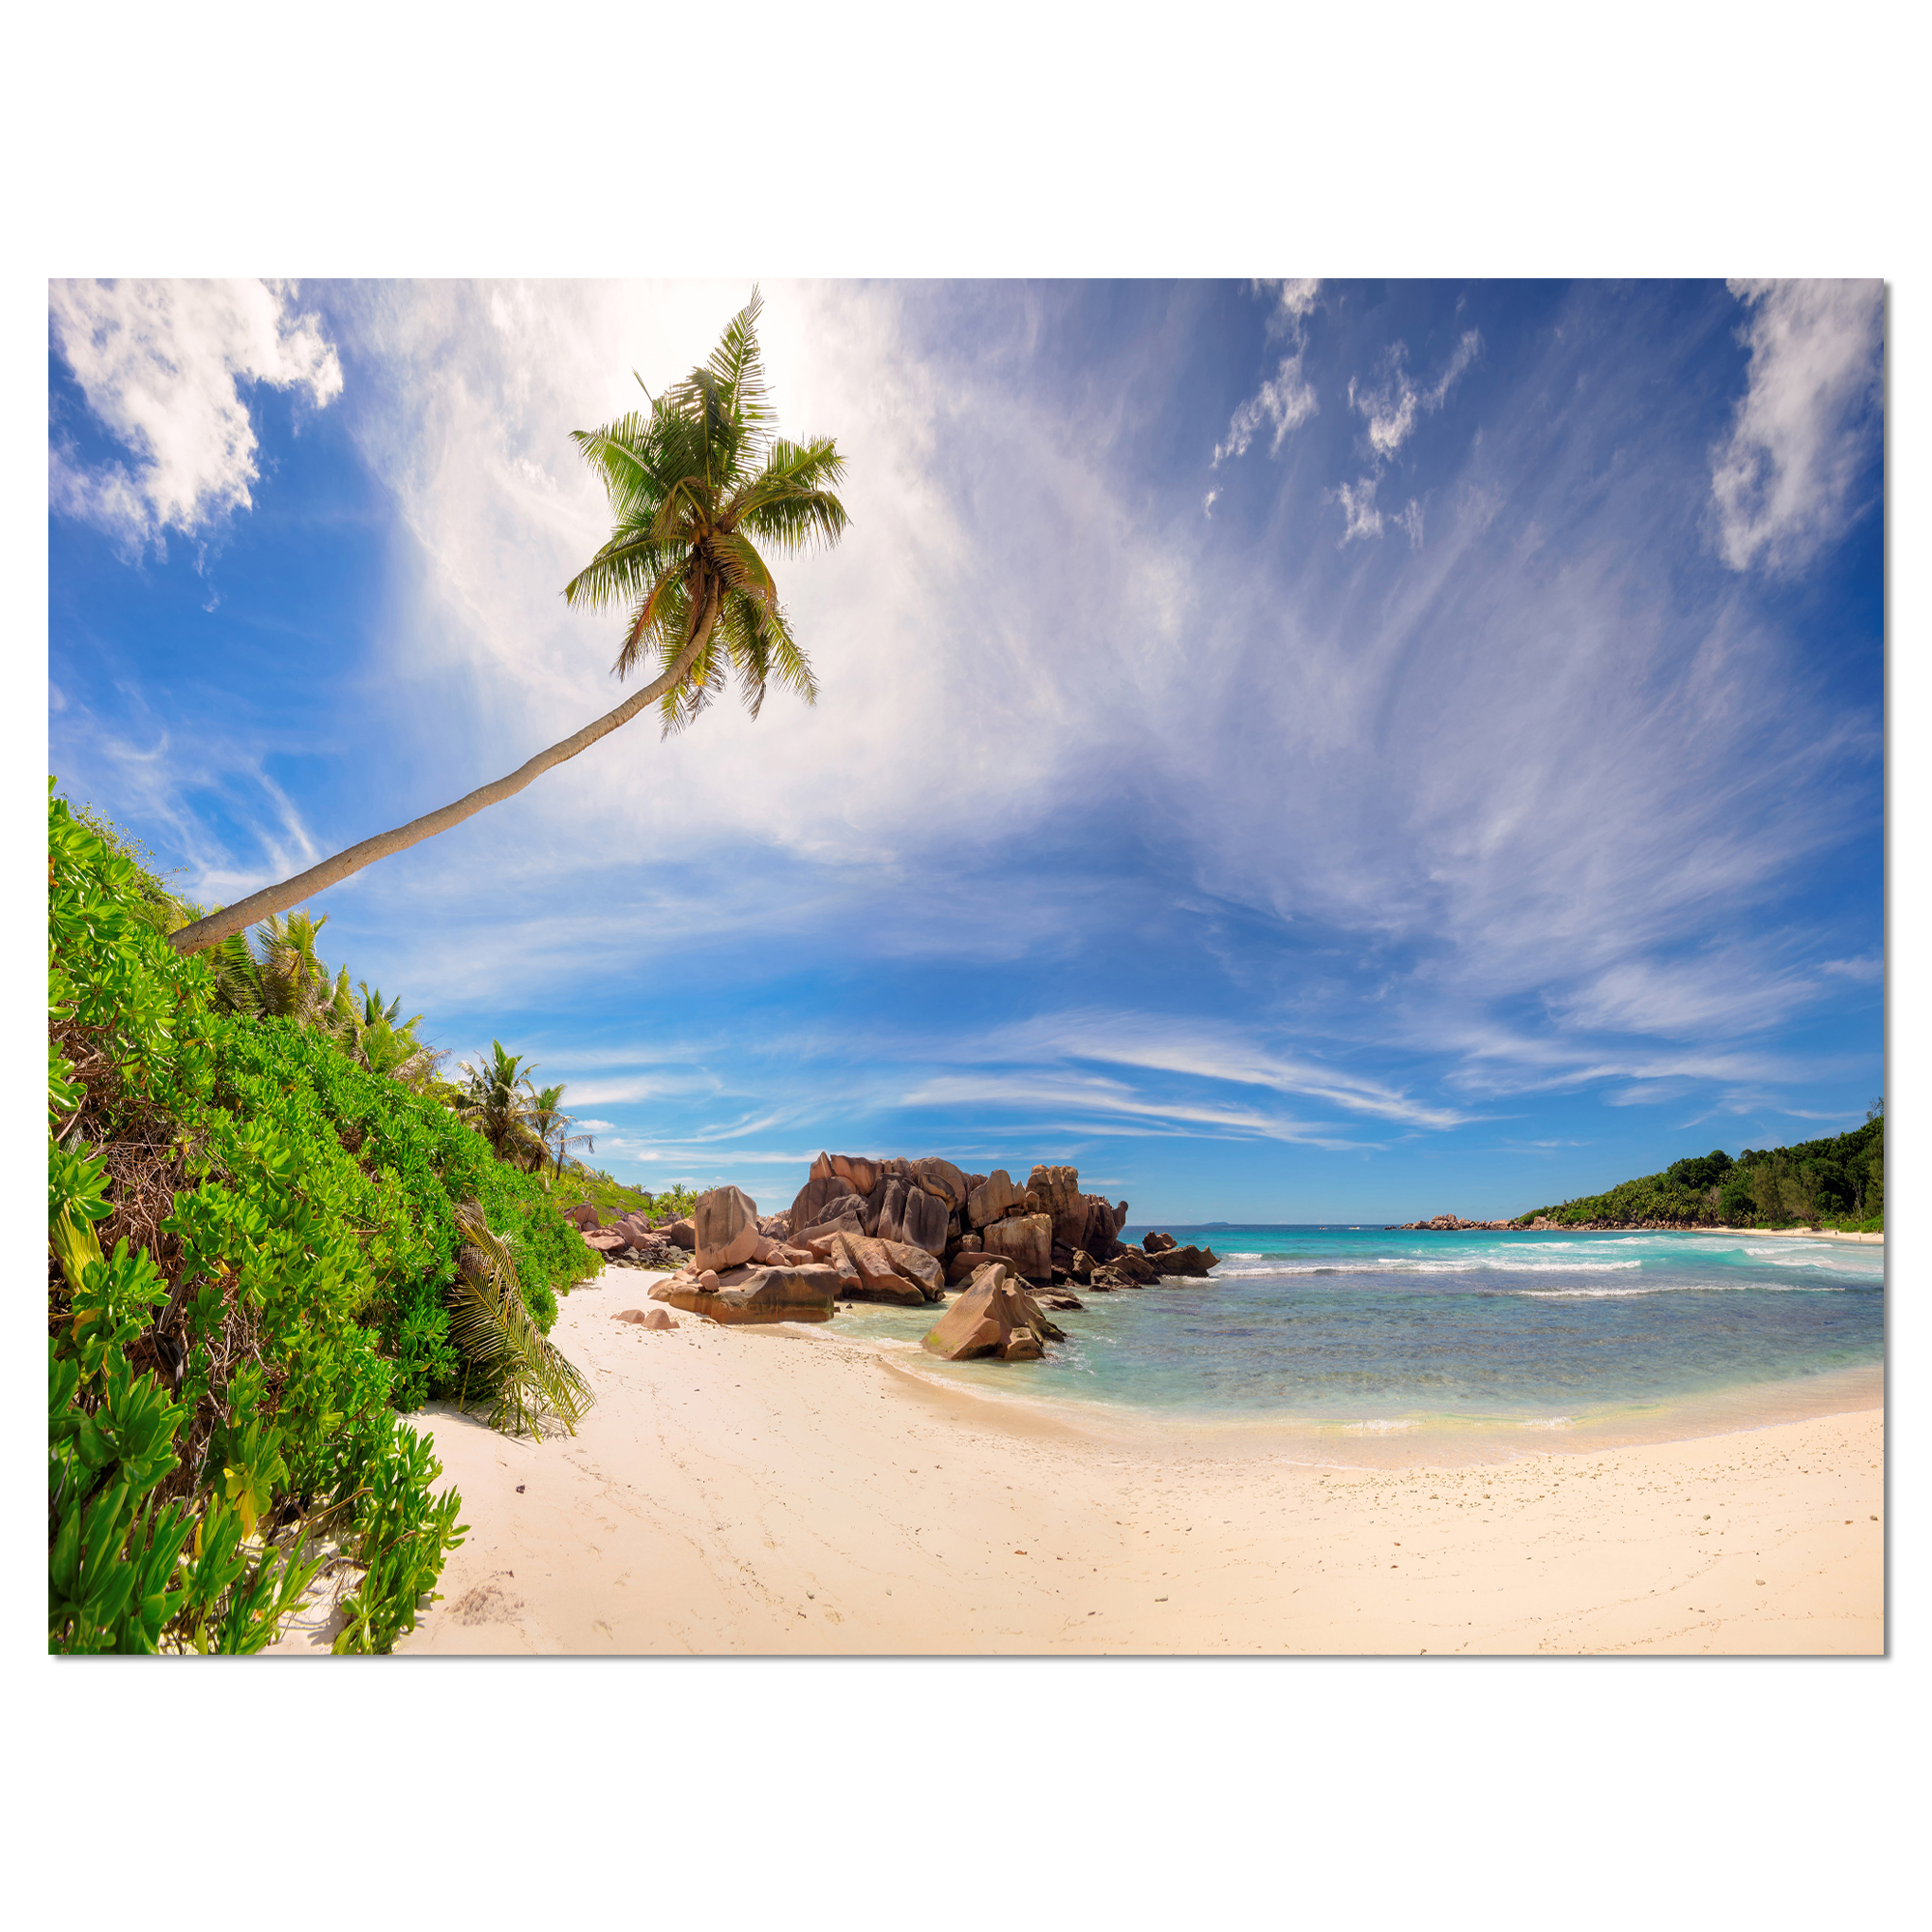 Beautiful Beach at La Digue Seychelles - Large Seashore Canvas Print - image 1 of 3